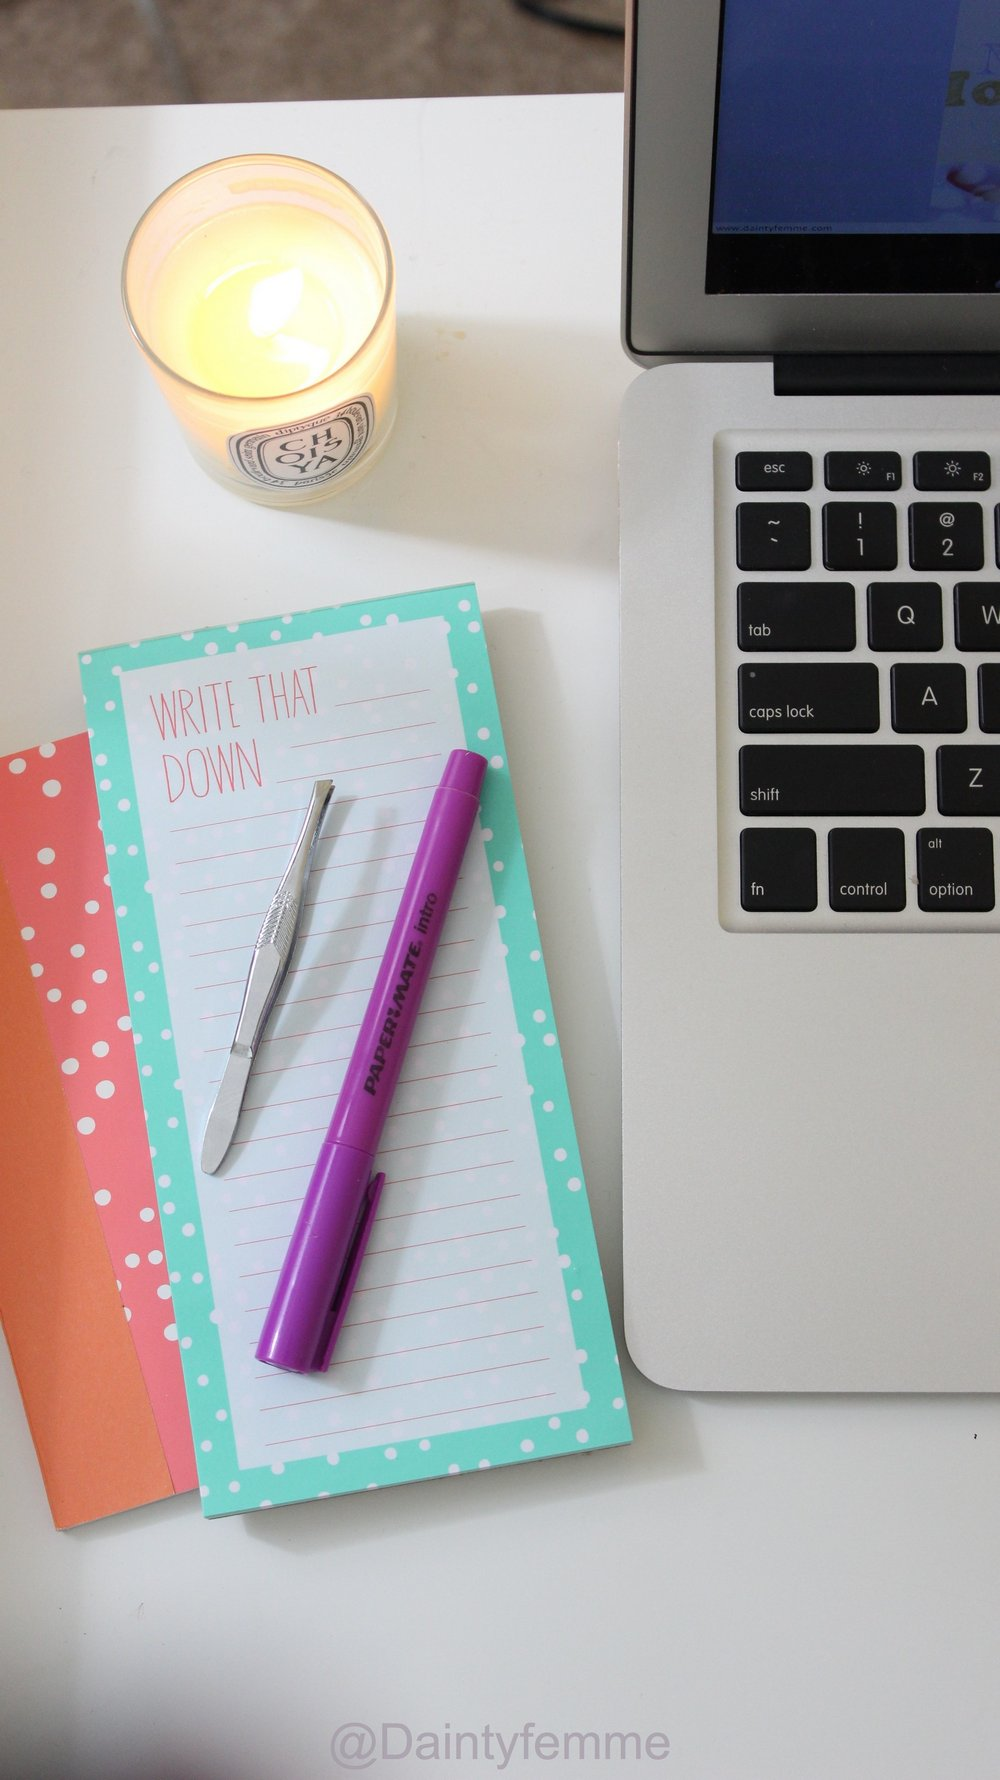 Florals, muted tones, and Dasani make a great workspace….